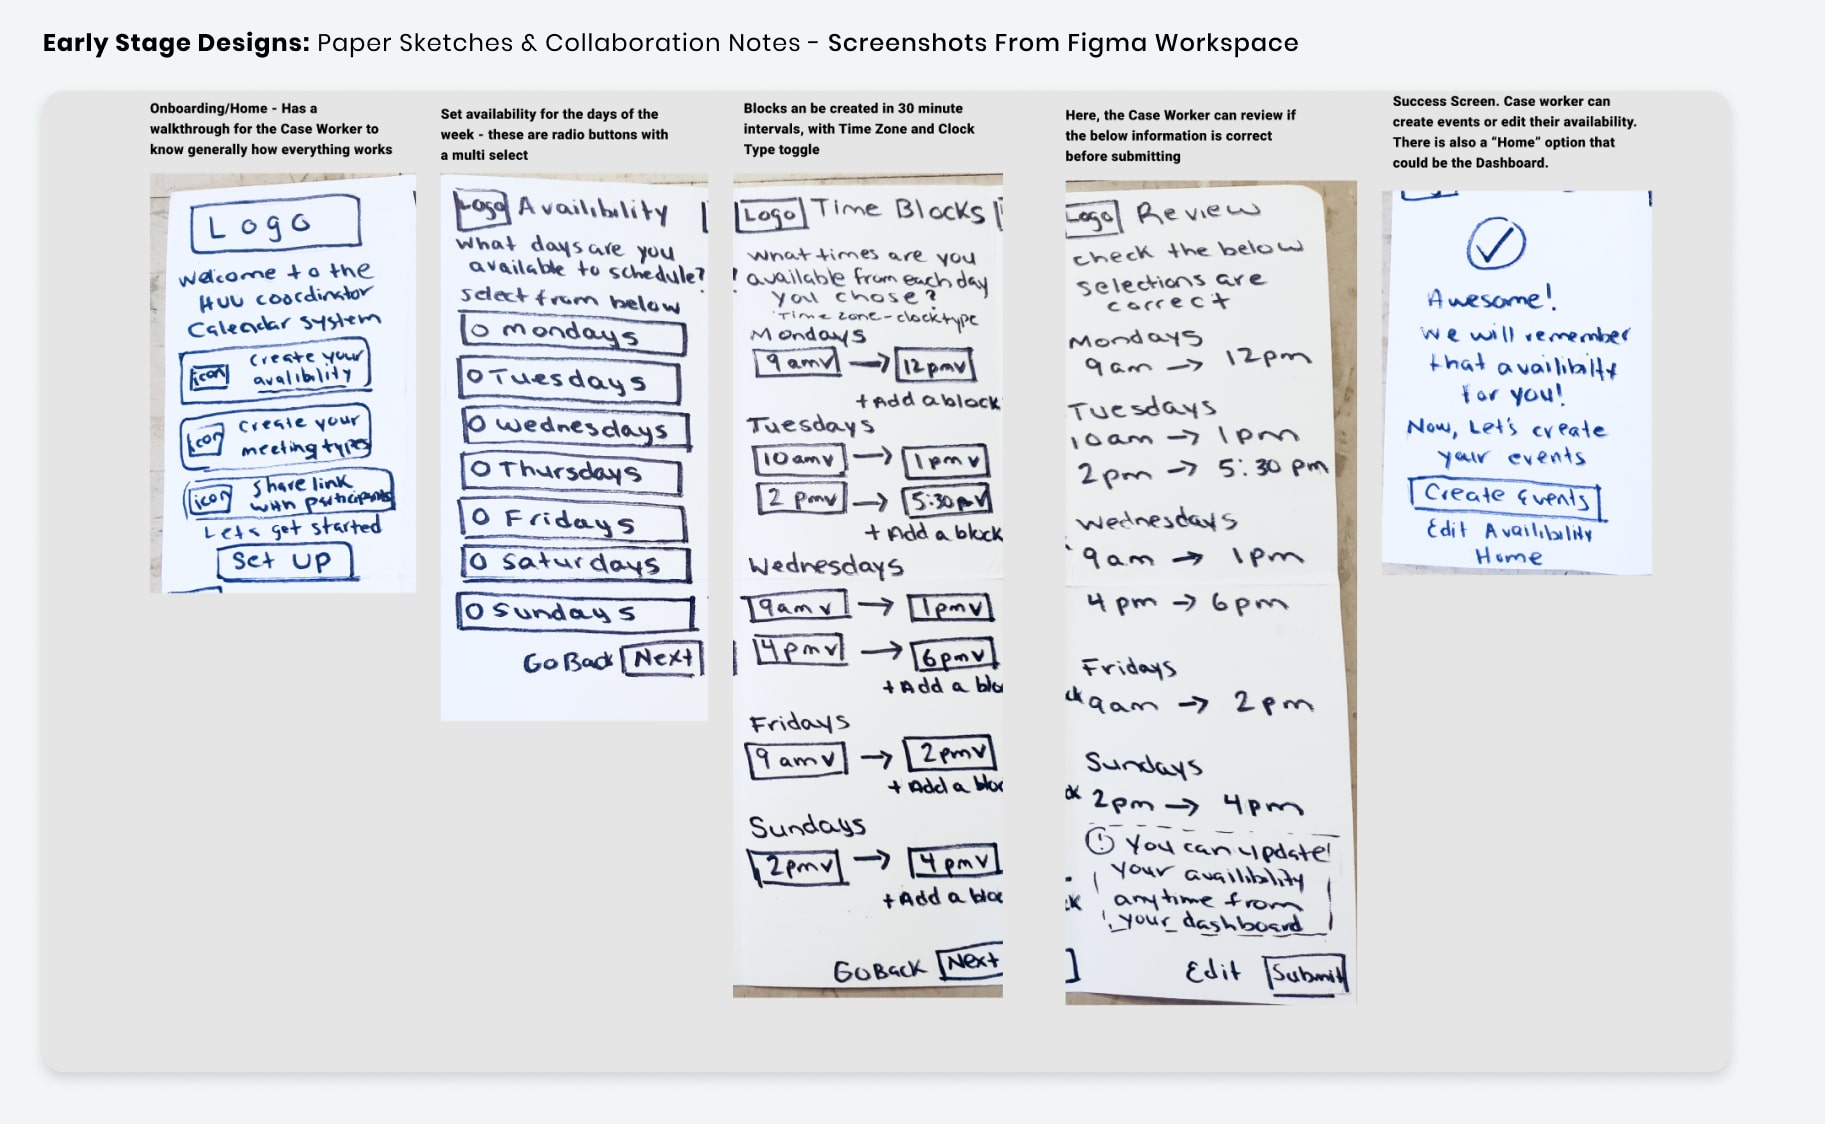 Early Stage Designs - Paper Sketches - Case Worker Preferences